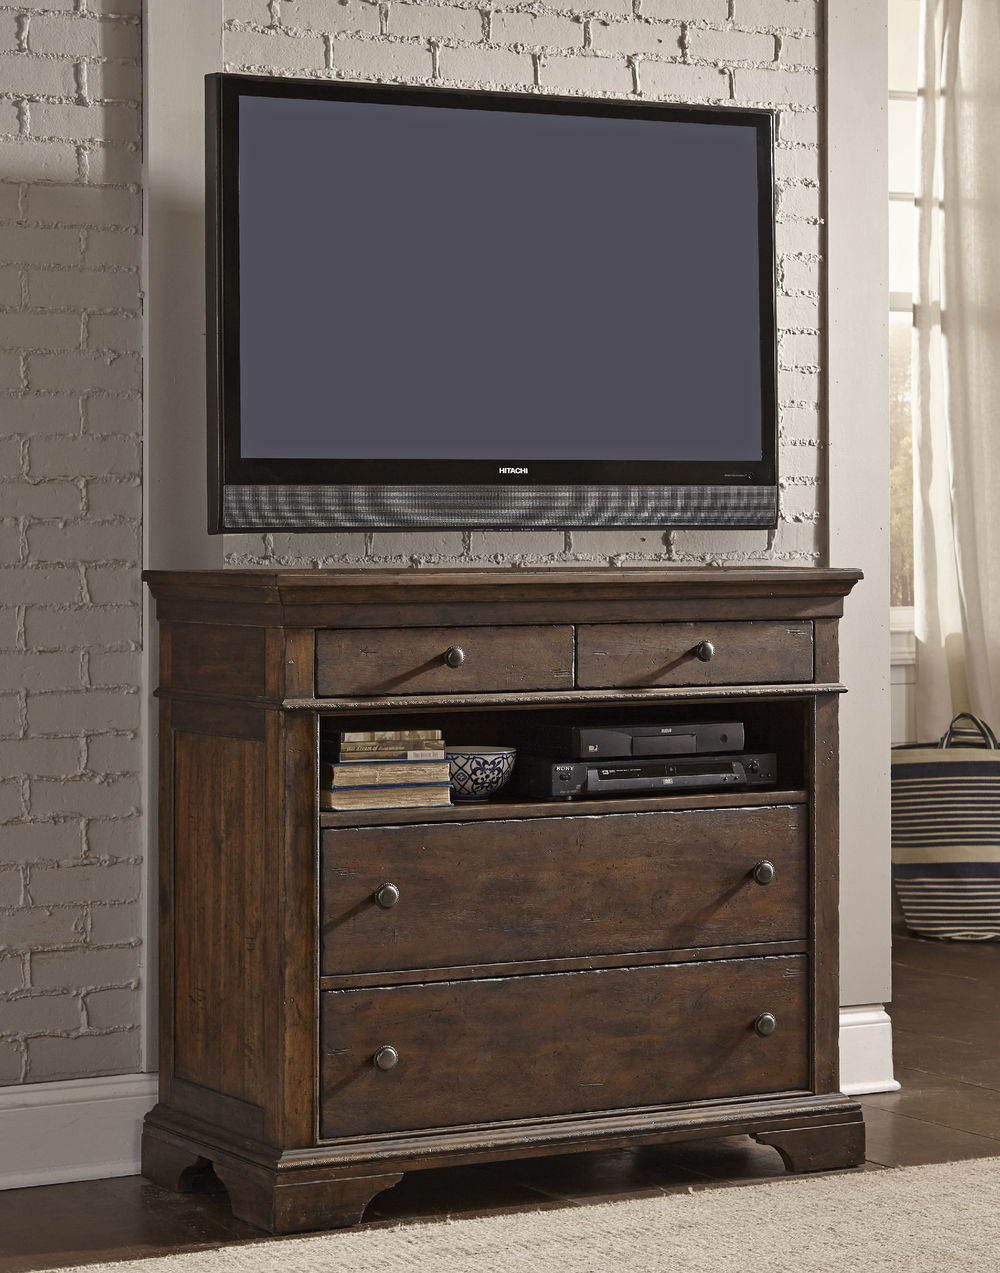 Klaussner Home Furnishings - Media Chest